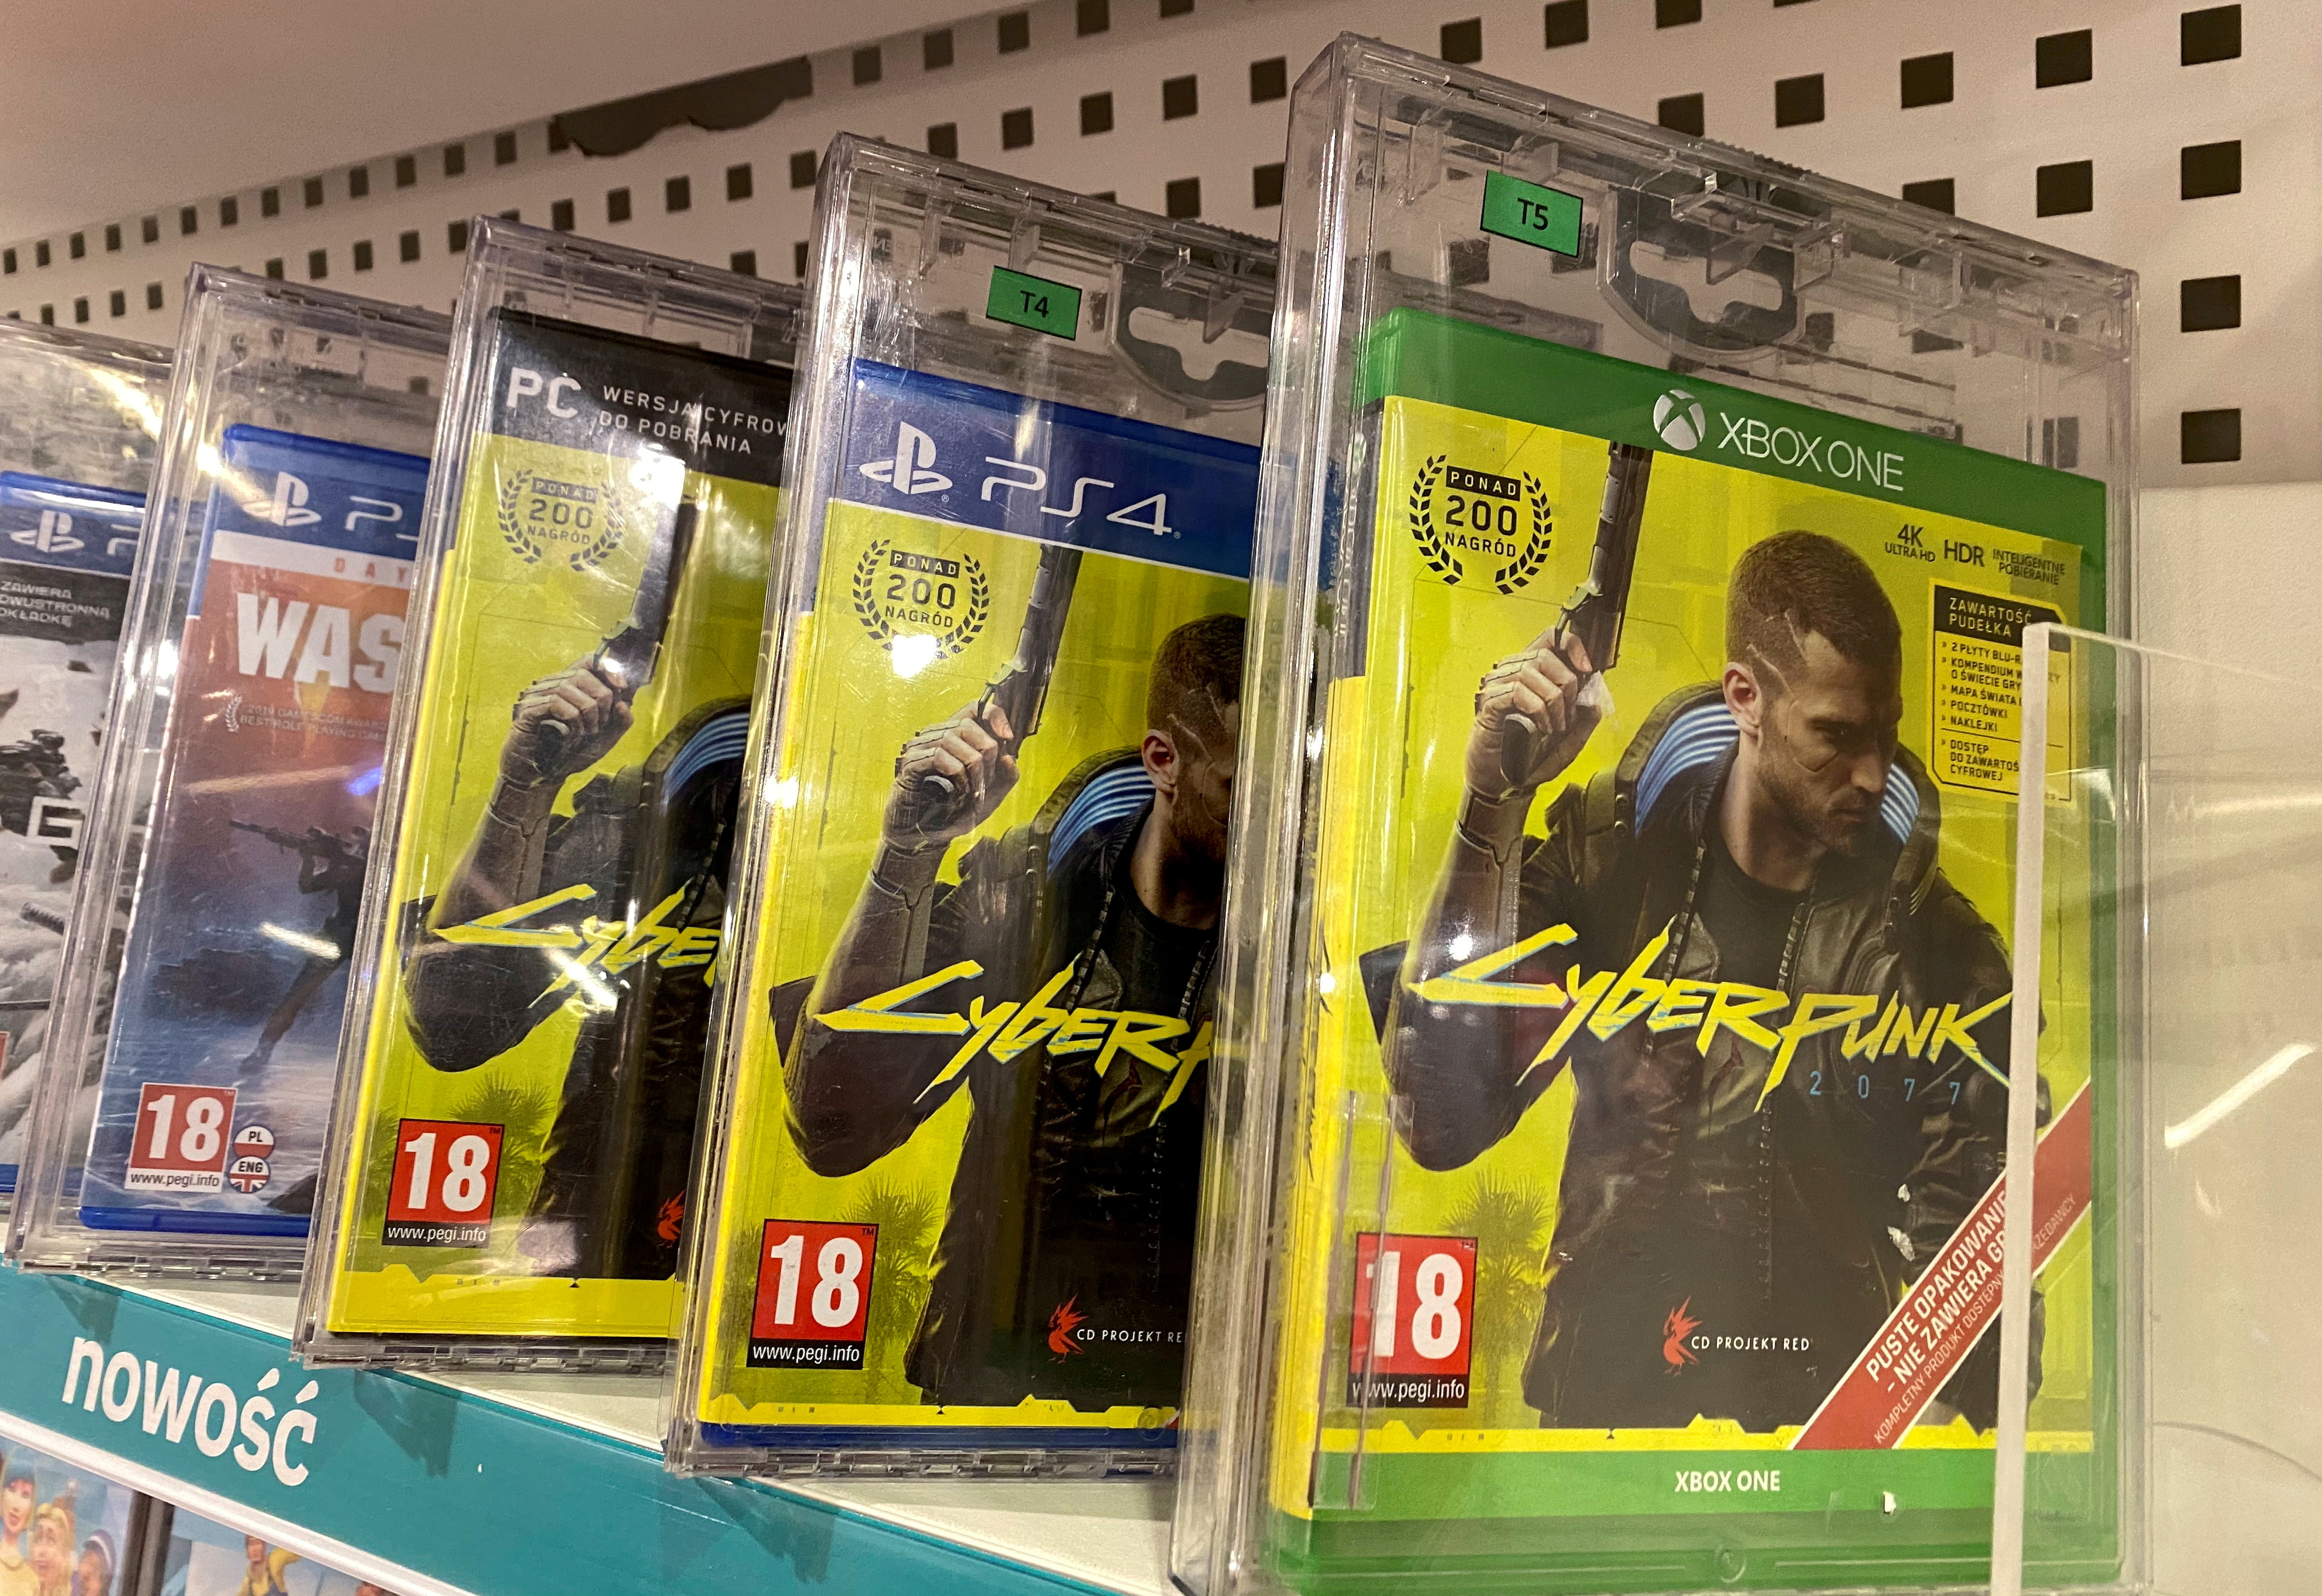 Boxes with CD Projekt's game Cyberpunk 2077 are displayed in Warsaw, Poland, Dec. 14, 2020. REUTERS/Kacper Pempel